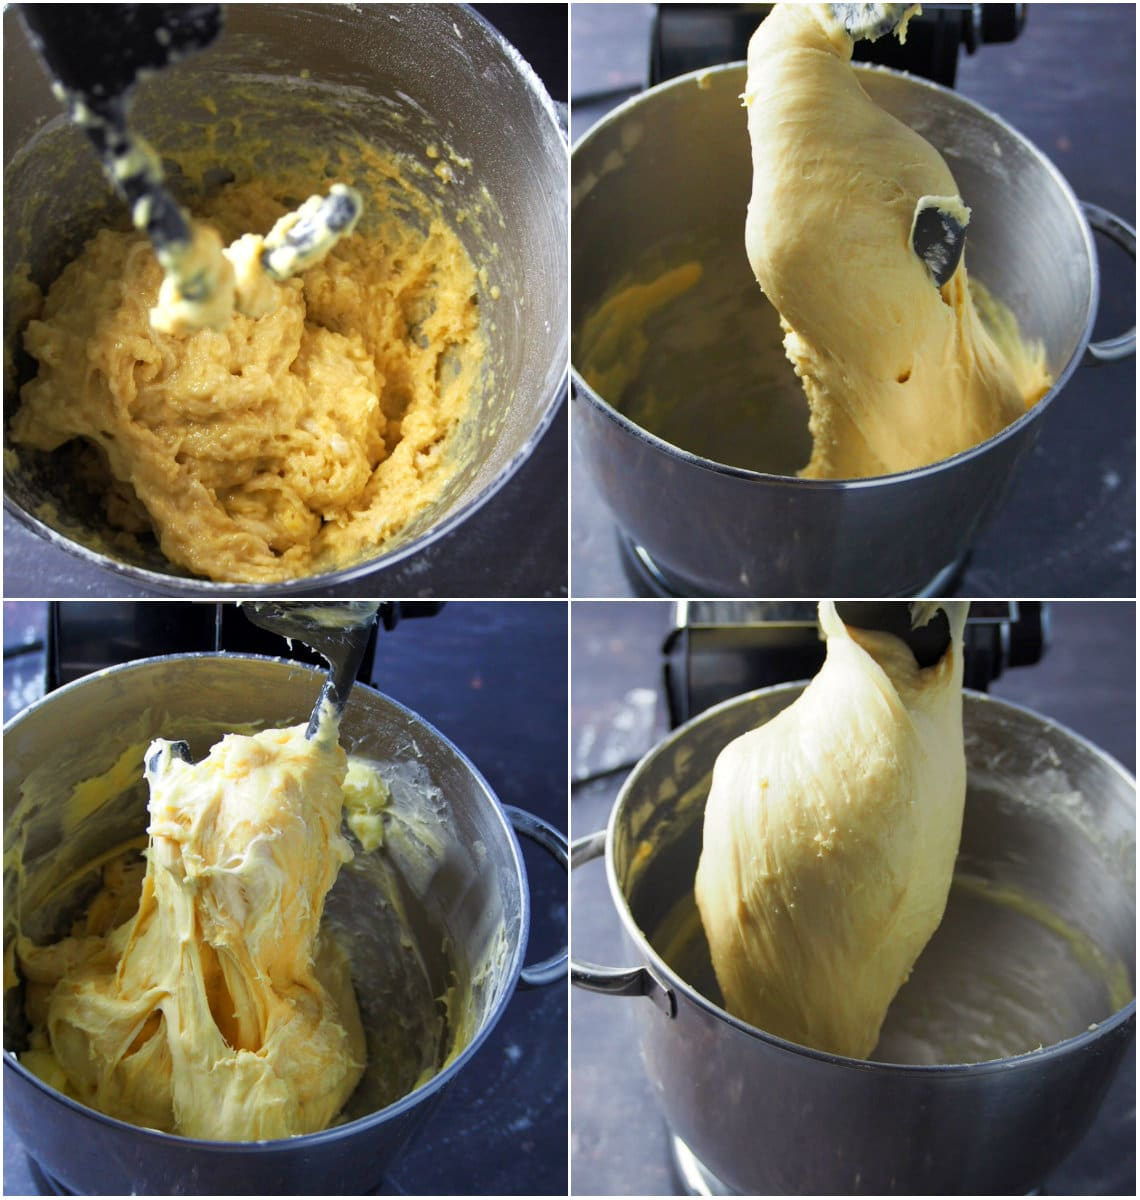 A process collage showing the mixing of the ensaymada dough.